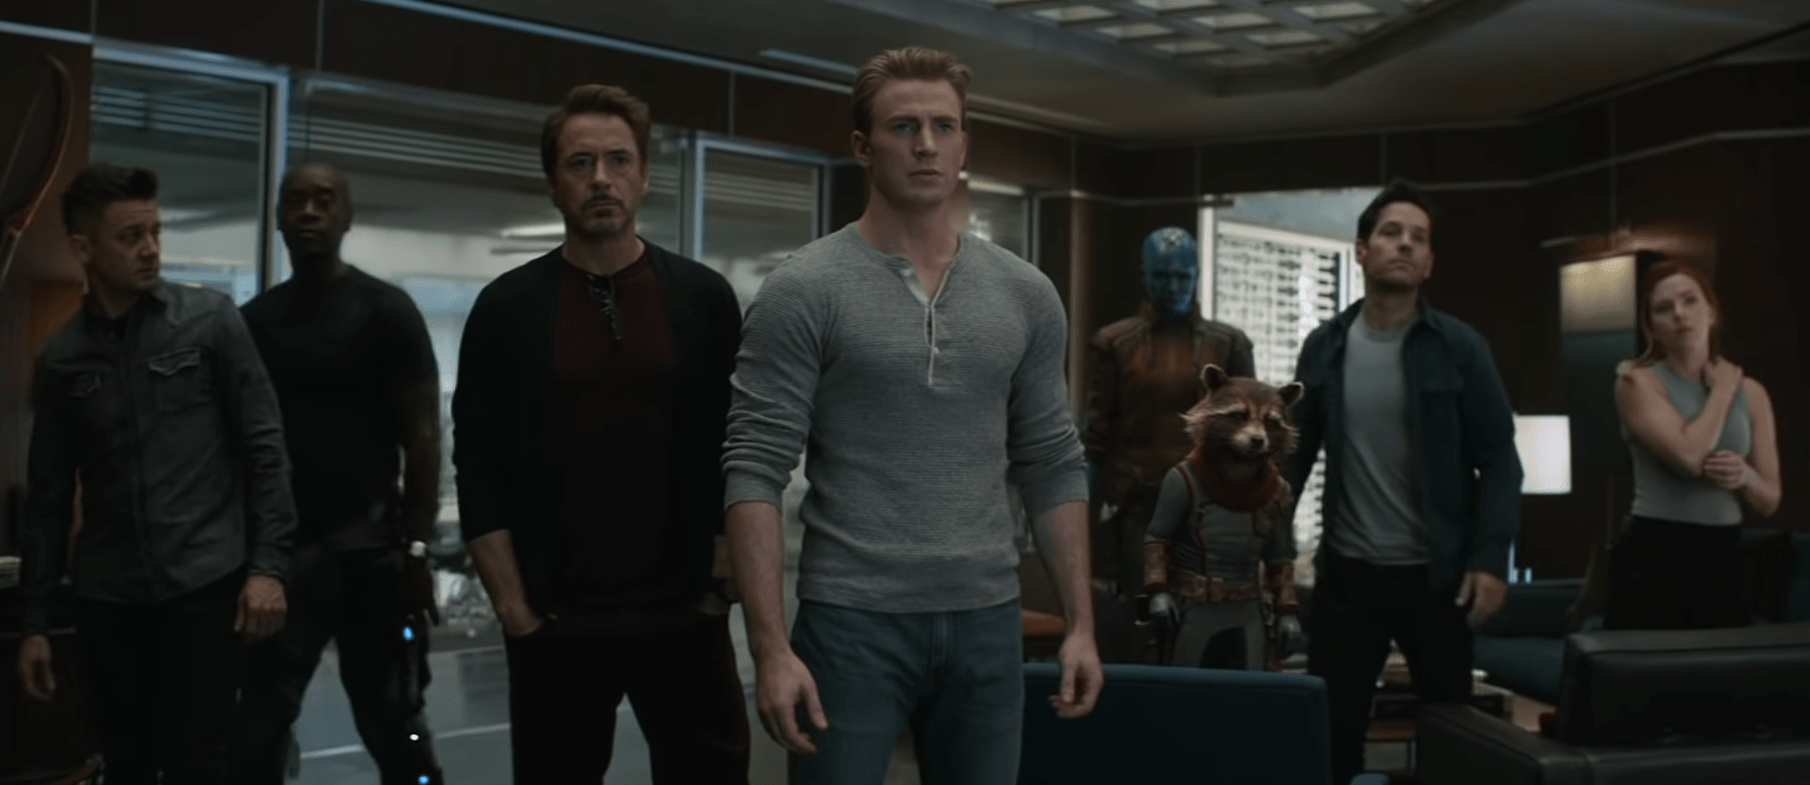 MASSIVE: Avengers Endgame's record-breaking collections - OFFICIAL